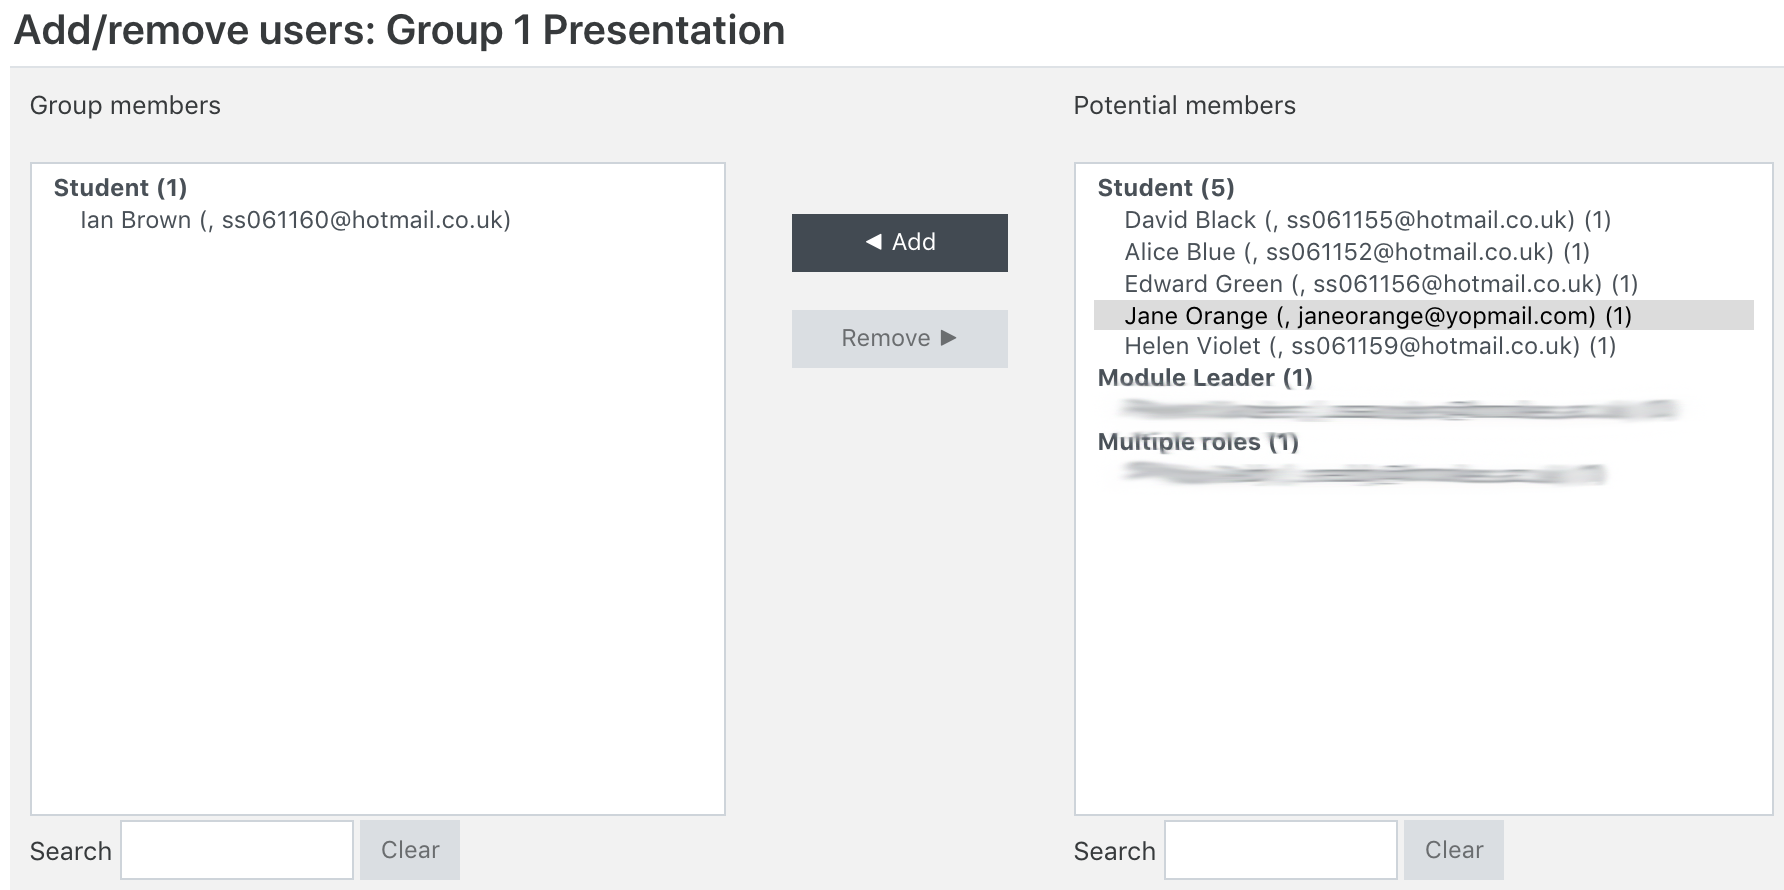 Screenshot of the add remove users page which shows existing group members as well as potential group members.